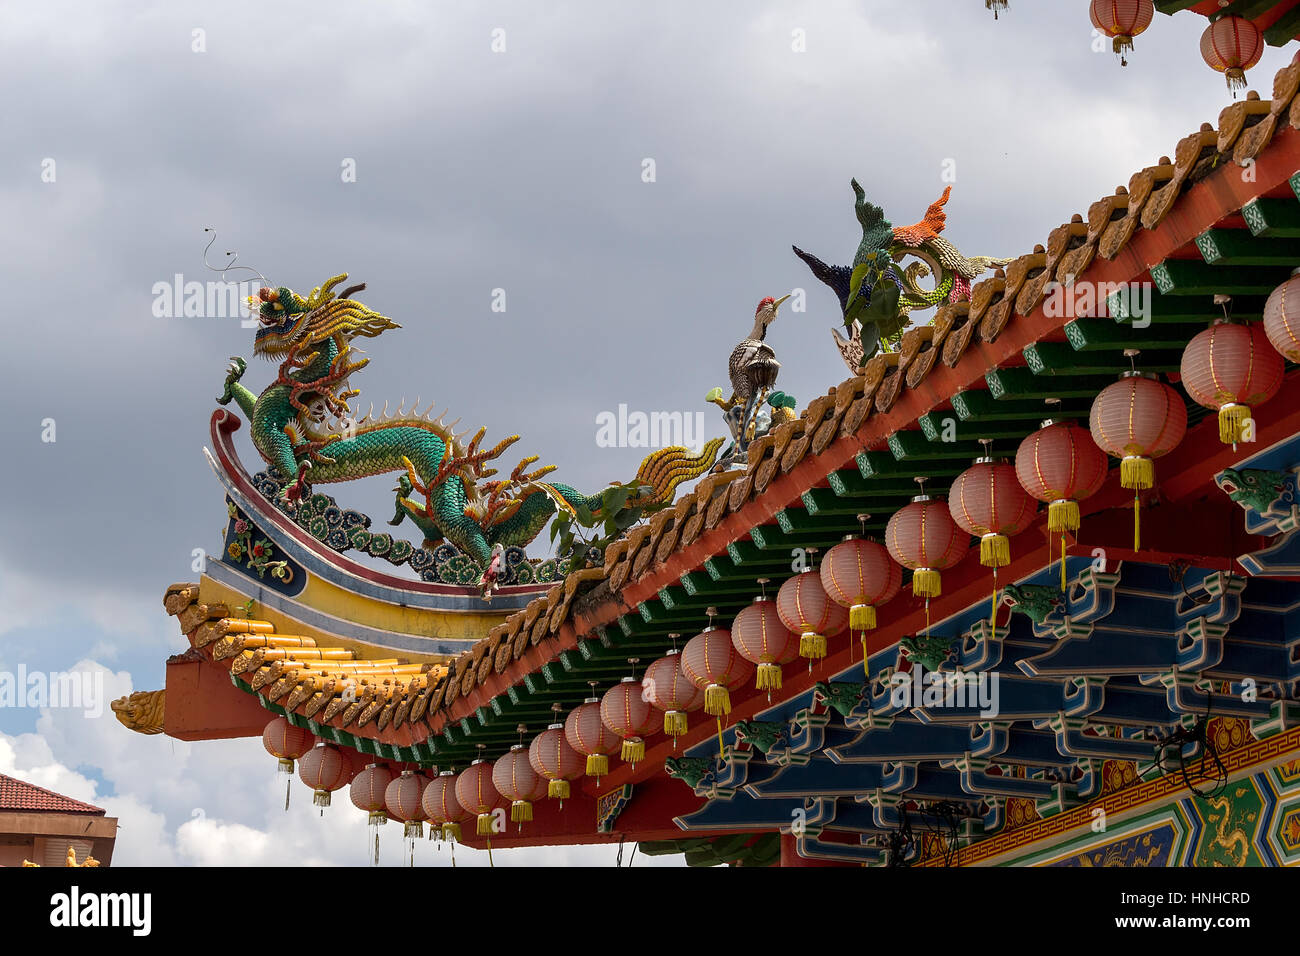 Dragon and Crane Mythical Creatures on Chinese Temple Roof Top - Stock Image